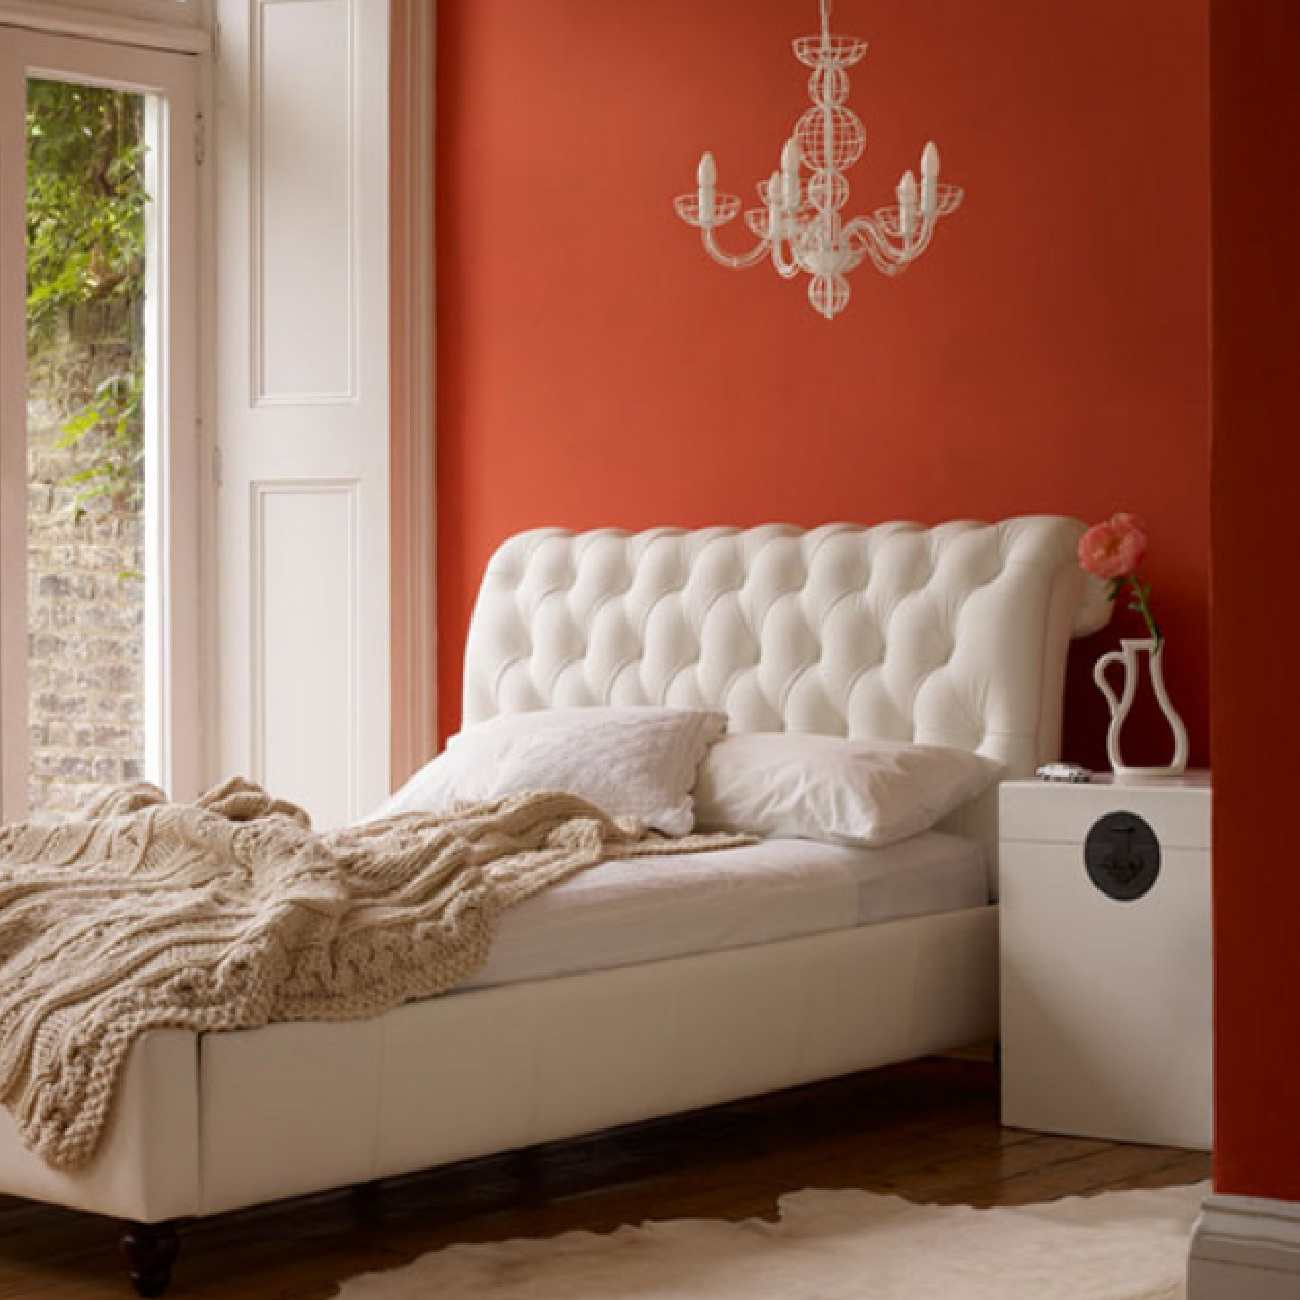 Fabulous Orange Bedroom Decorating Ideas And Designs